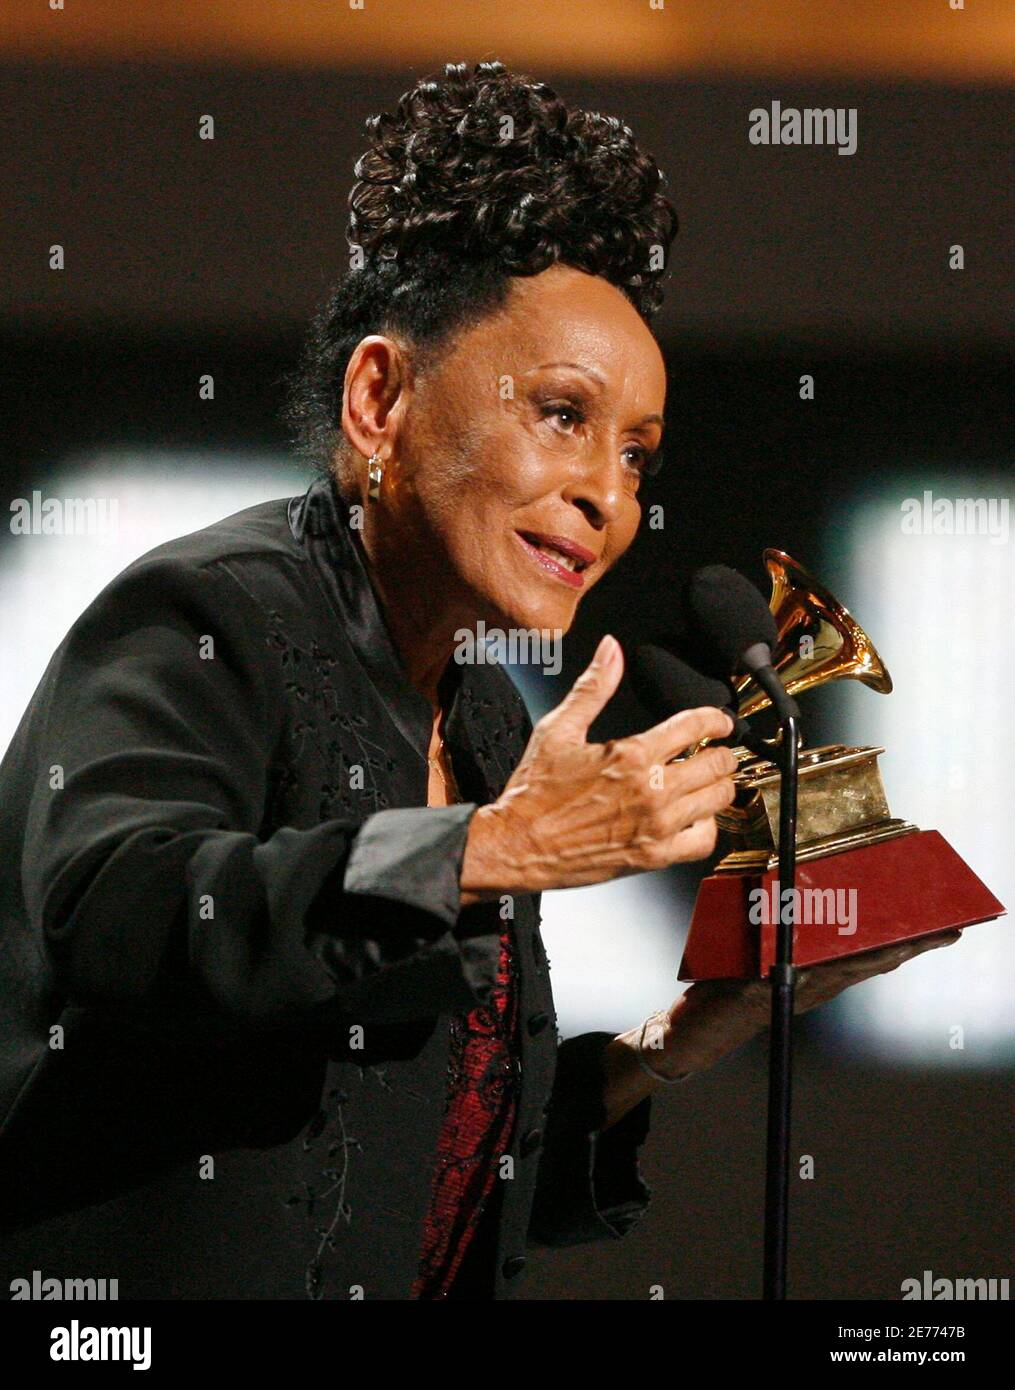 """Cuban singer Omara Portuondo receives her award for Best Contemporary Tropical Album with """"Gracias"""" at the 10th annual Latin Grammy awards in Las Vegas, Nevada in this November 5, 2009 file photo. Cuban musicians such as Portuondo are returning to the United States after a long freeze on such visits, seizing the opportunity of friendlier overtures towards Havana from President Barack Obama.  REUTERS/Mario Anzuoni/Files (UNITED STATES ENTERTAINMENT POLITICS) Stock Photo"""